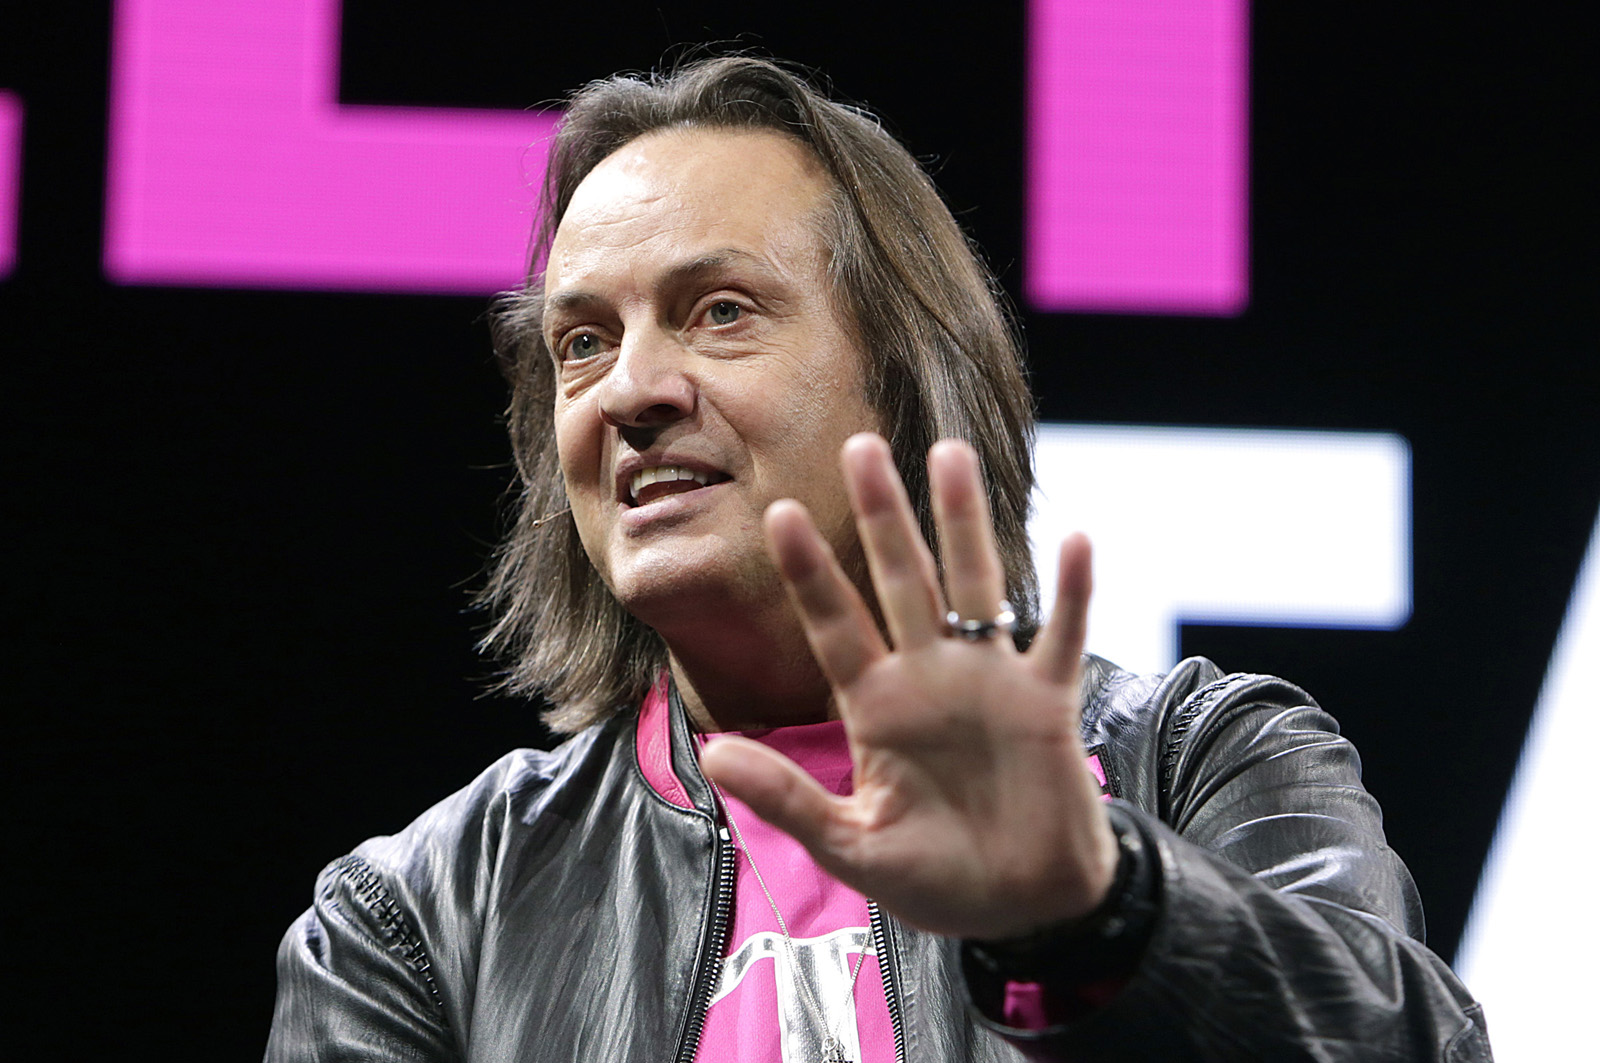 T-Mobile to Begin Testing LTE Home Internet Service Before 5G Service Launch